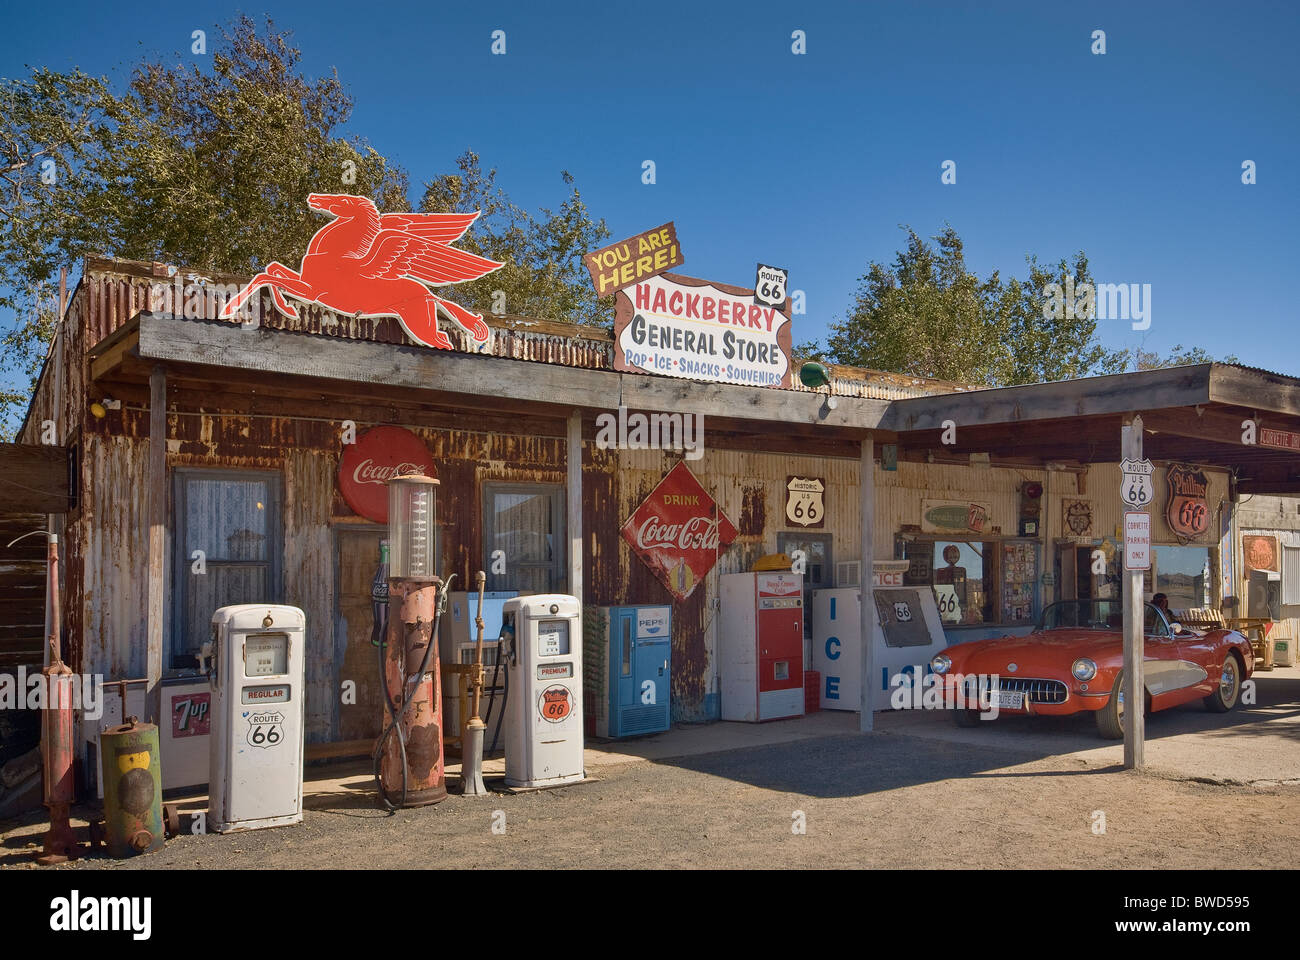 Gift Shop At Old Gas Station On Route 66 In Hackberry Arizona Usa Stock Photo Alamy